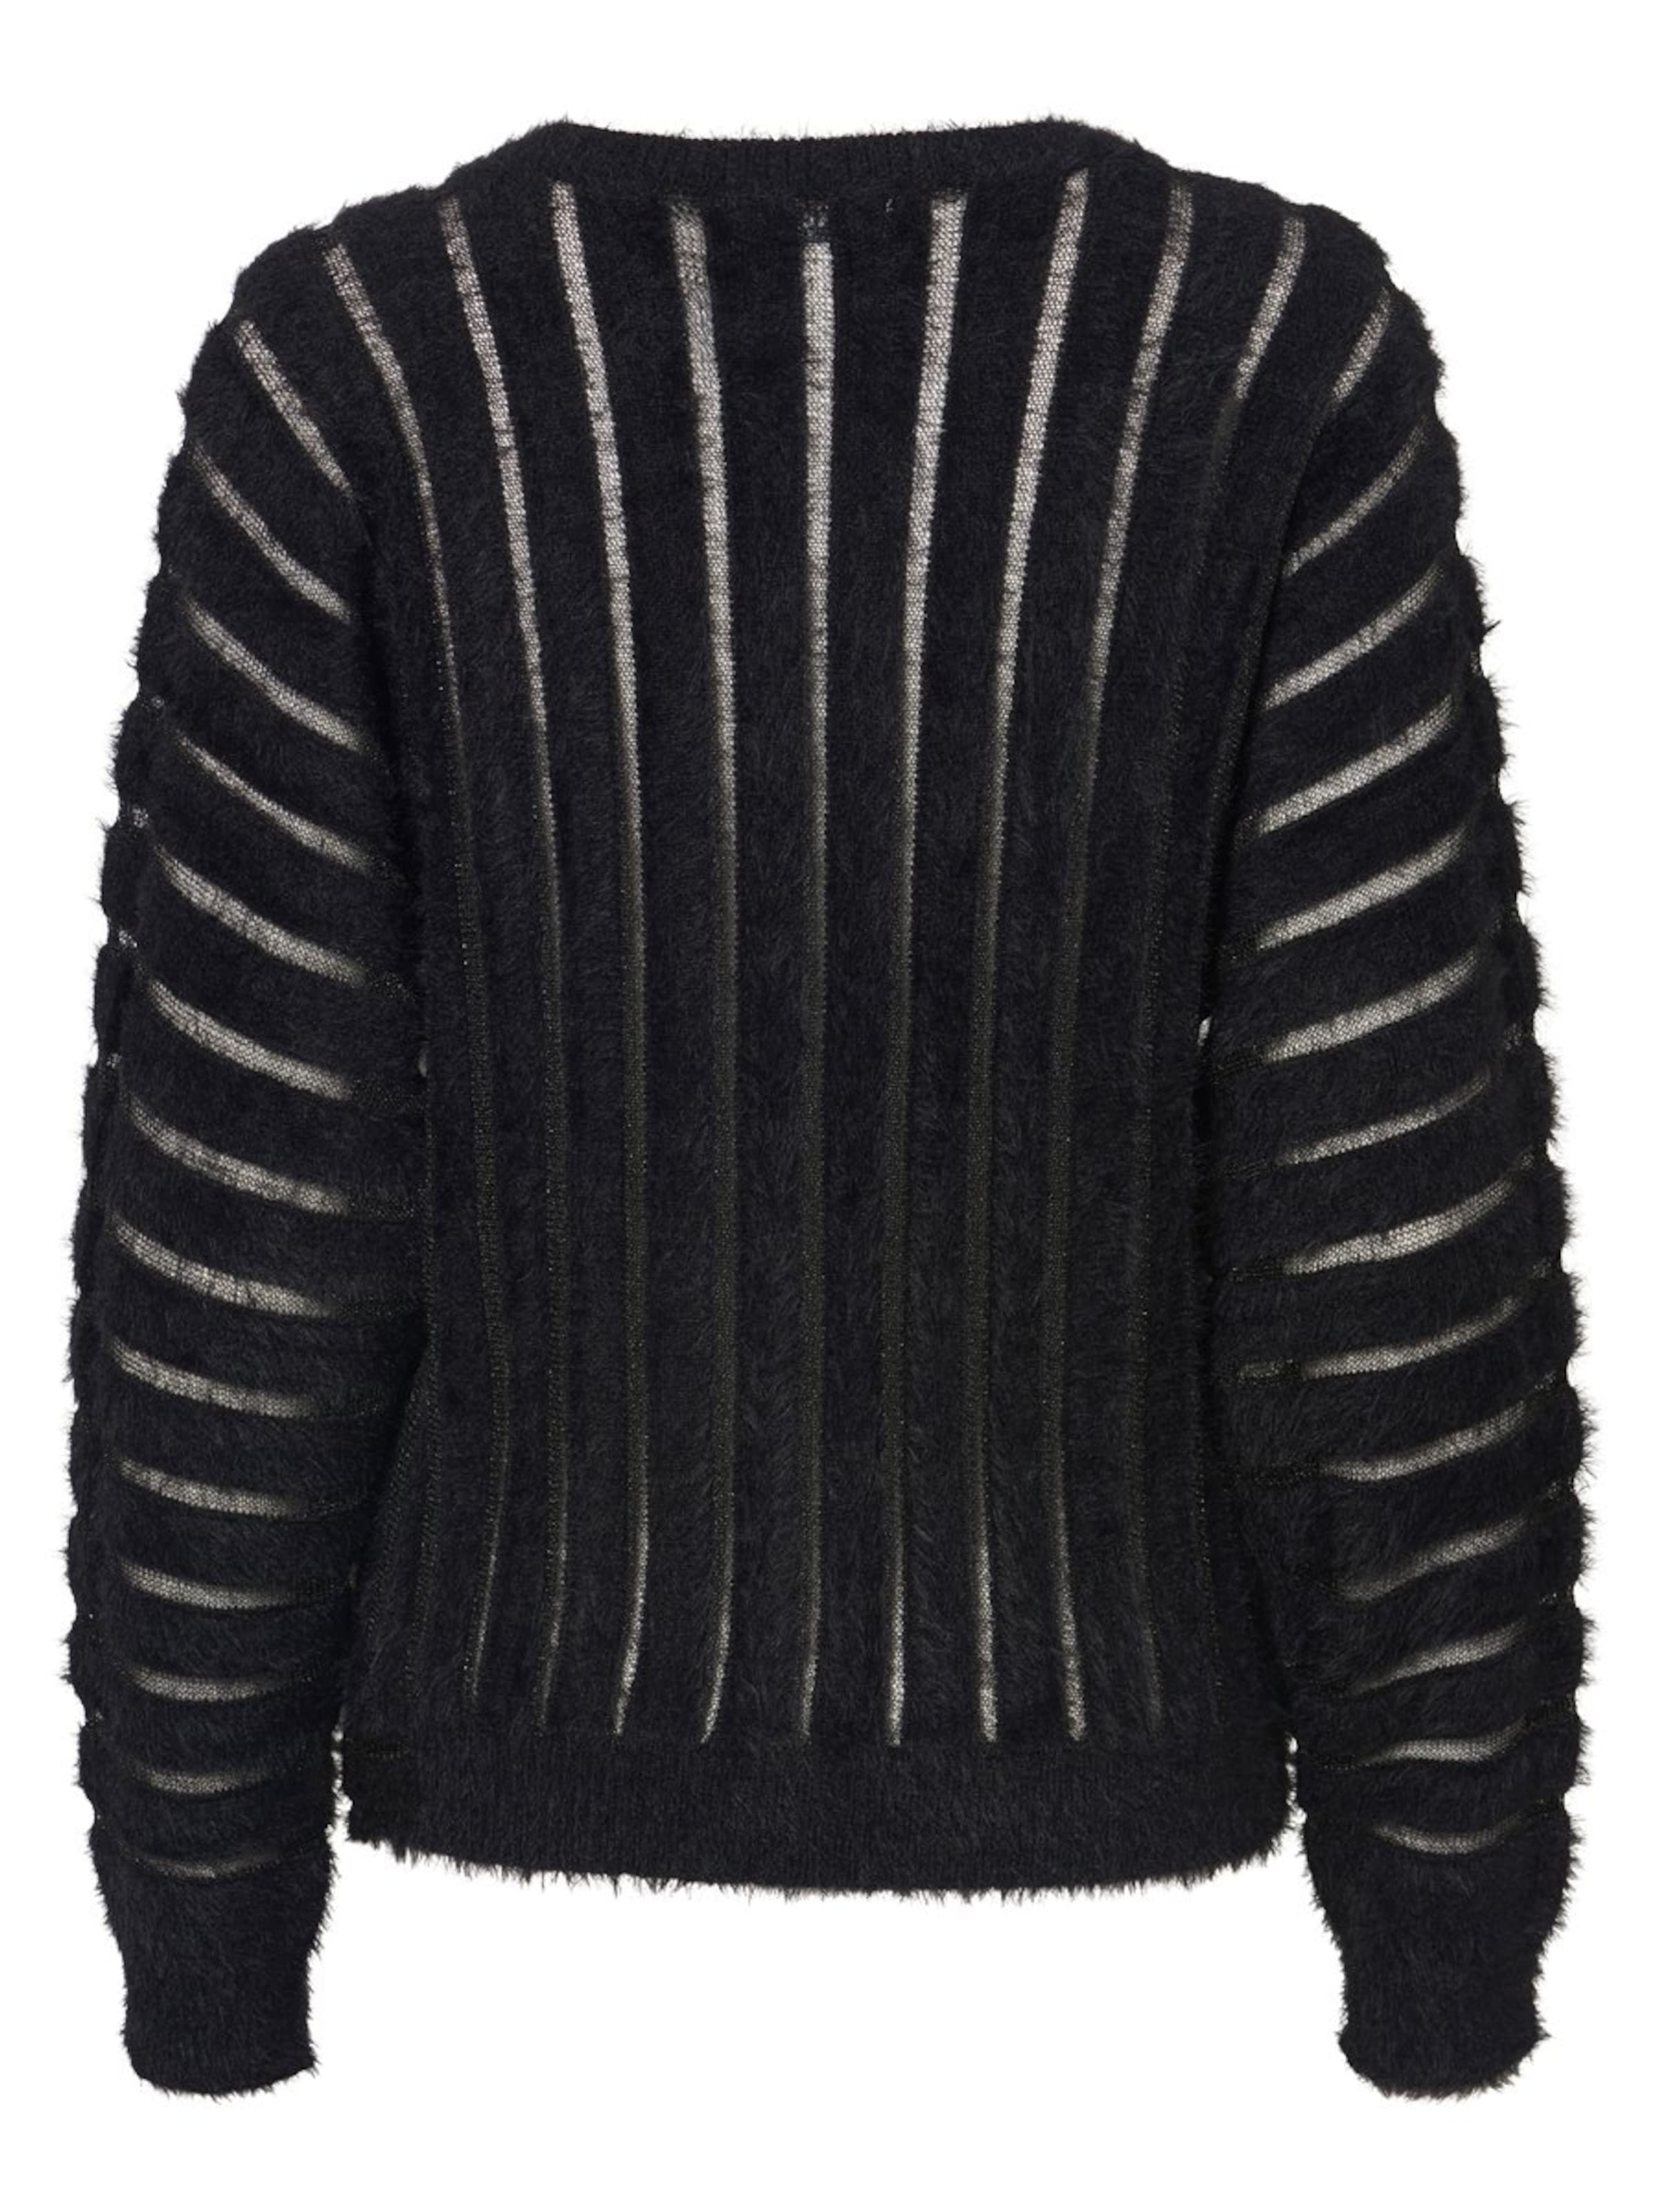 Pieces Pullover Pullover Pullover SchwarzSilber Pieces Pieces In In In SchwarzSilber In SchwarzSilber Pieces Pullover cRLjq354A